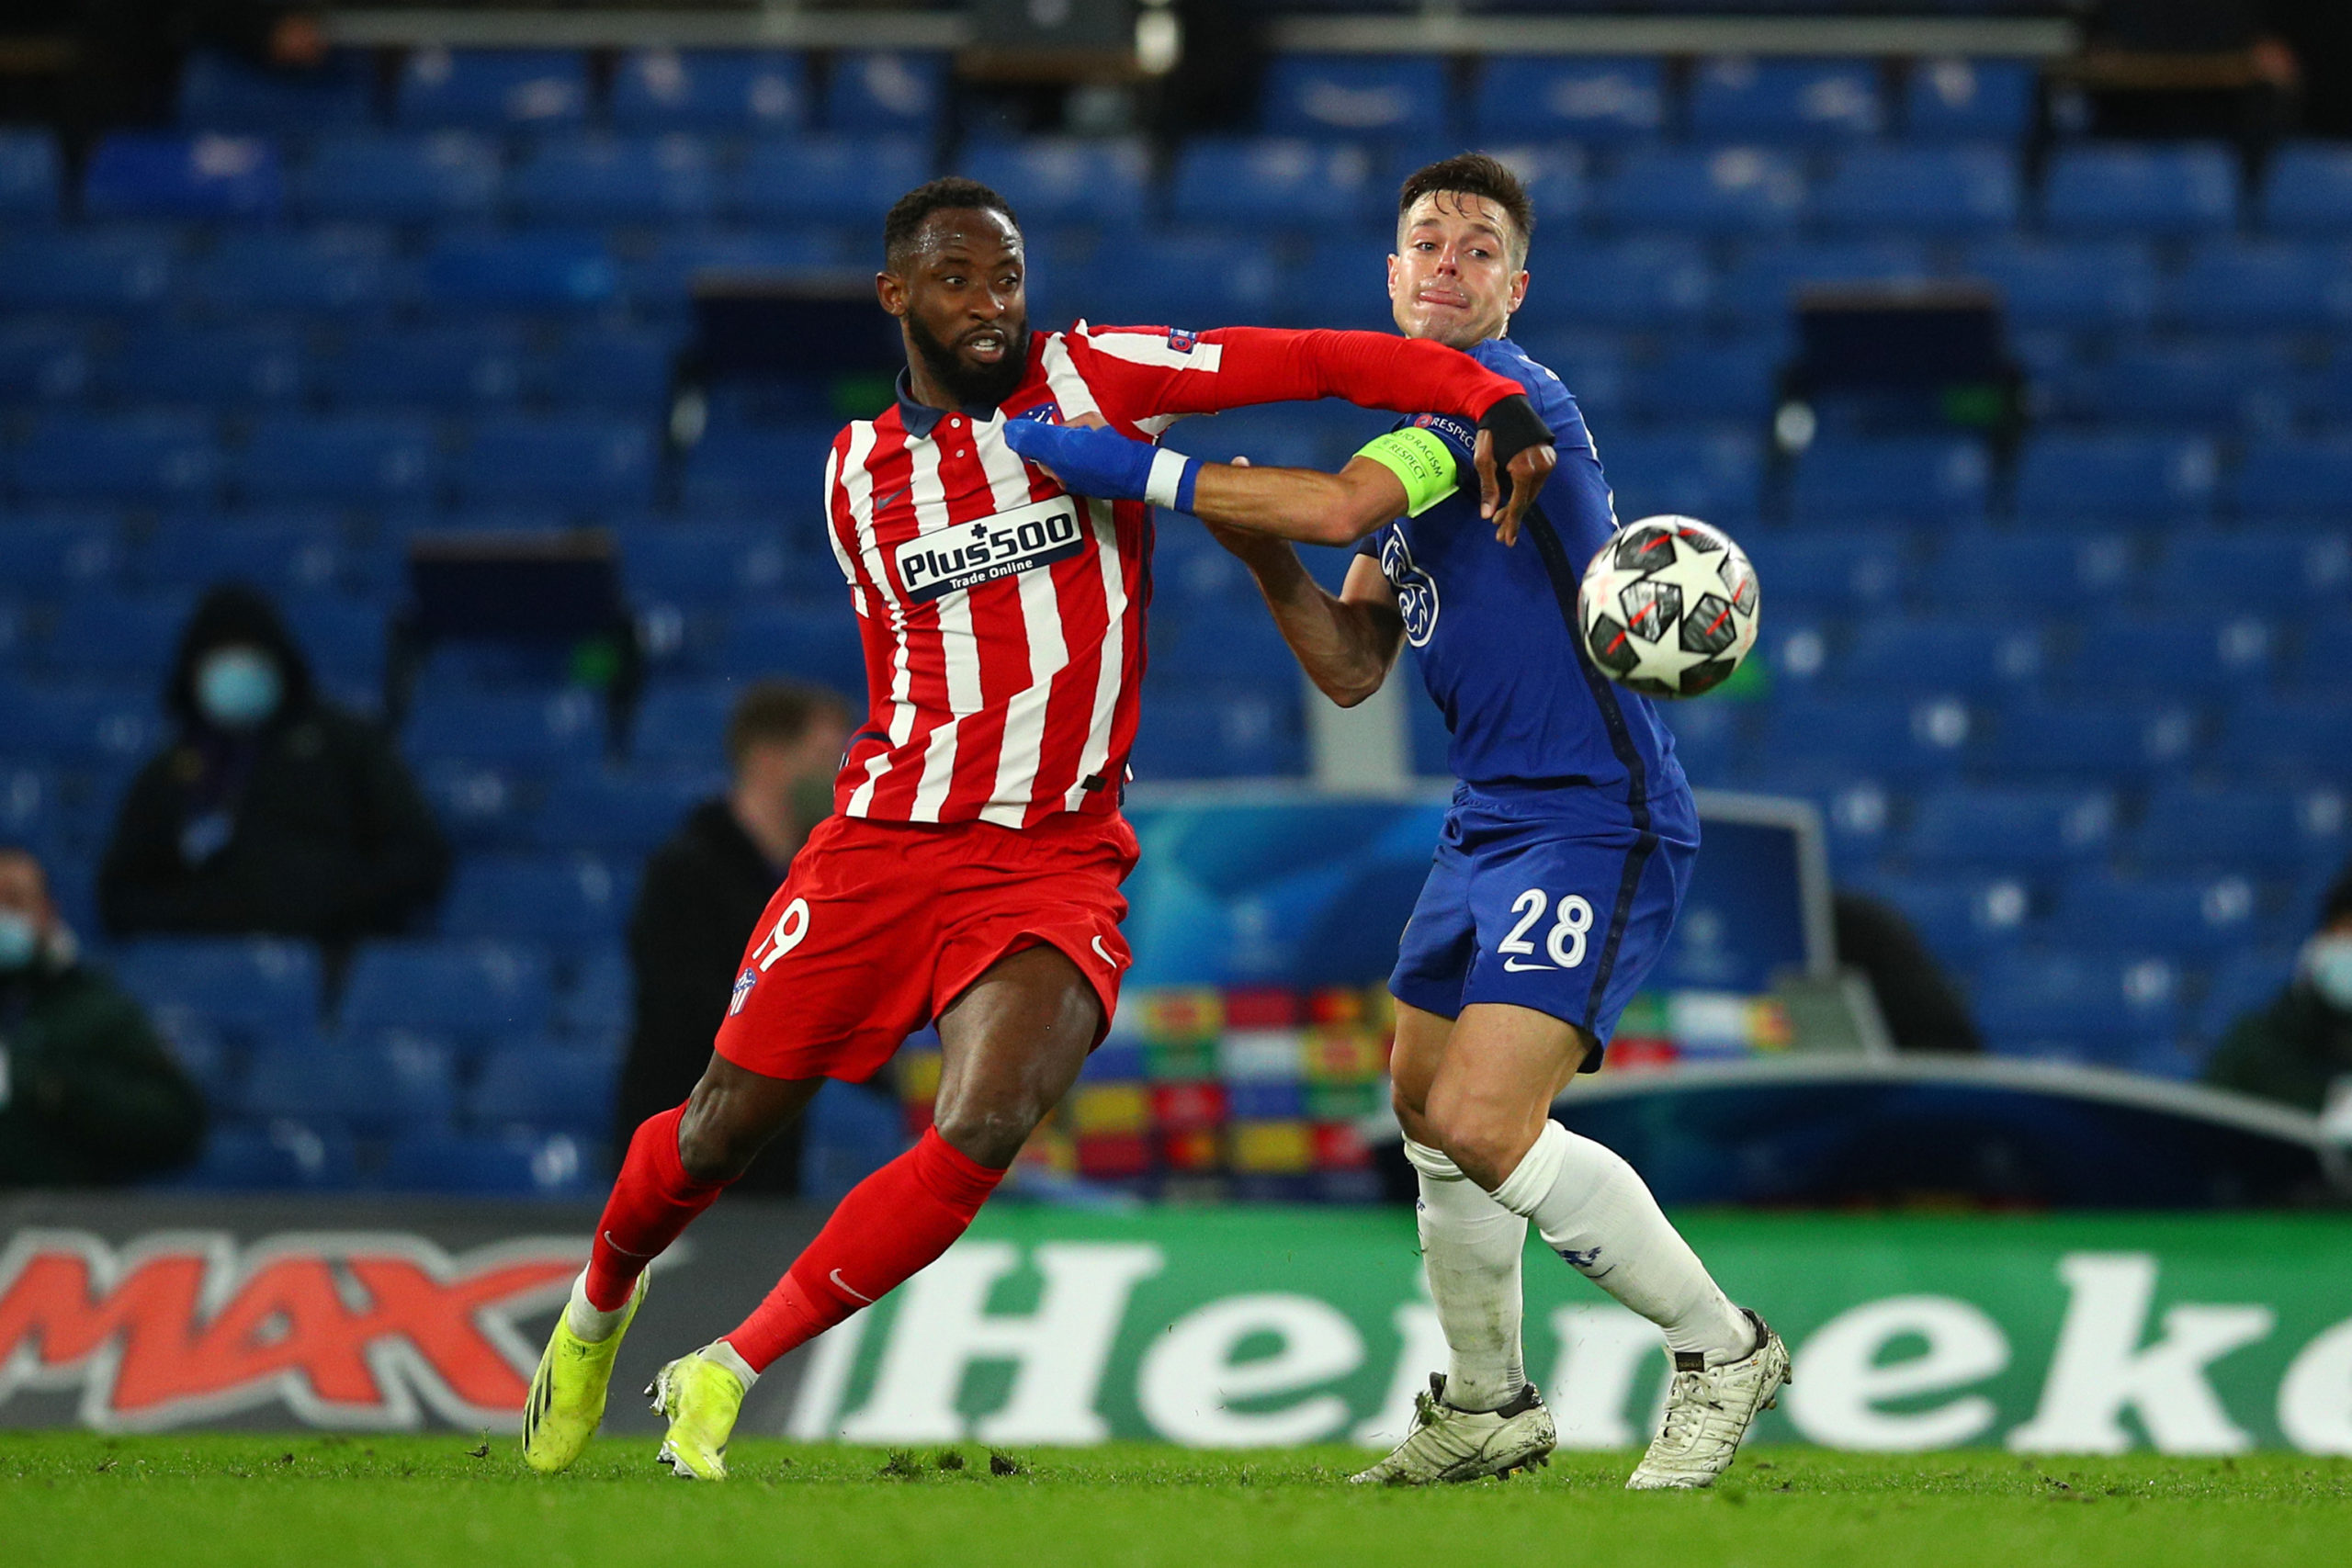 Moussa Dembele in action for Atletico Madrid